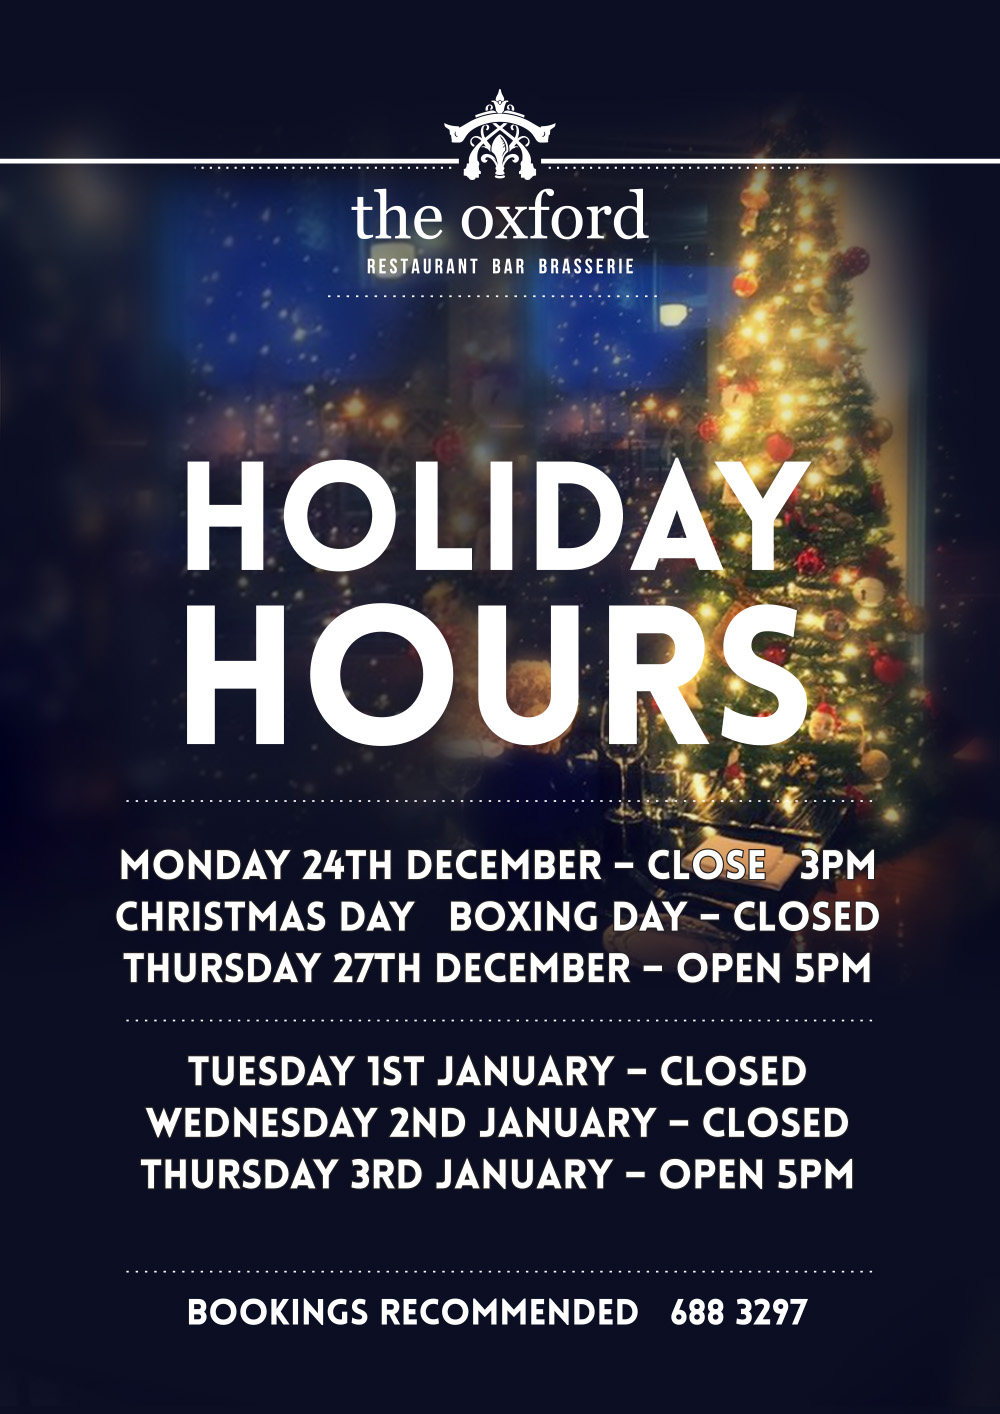 Oxford Holiday Hours 2018